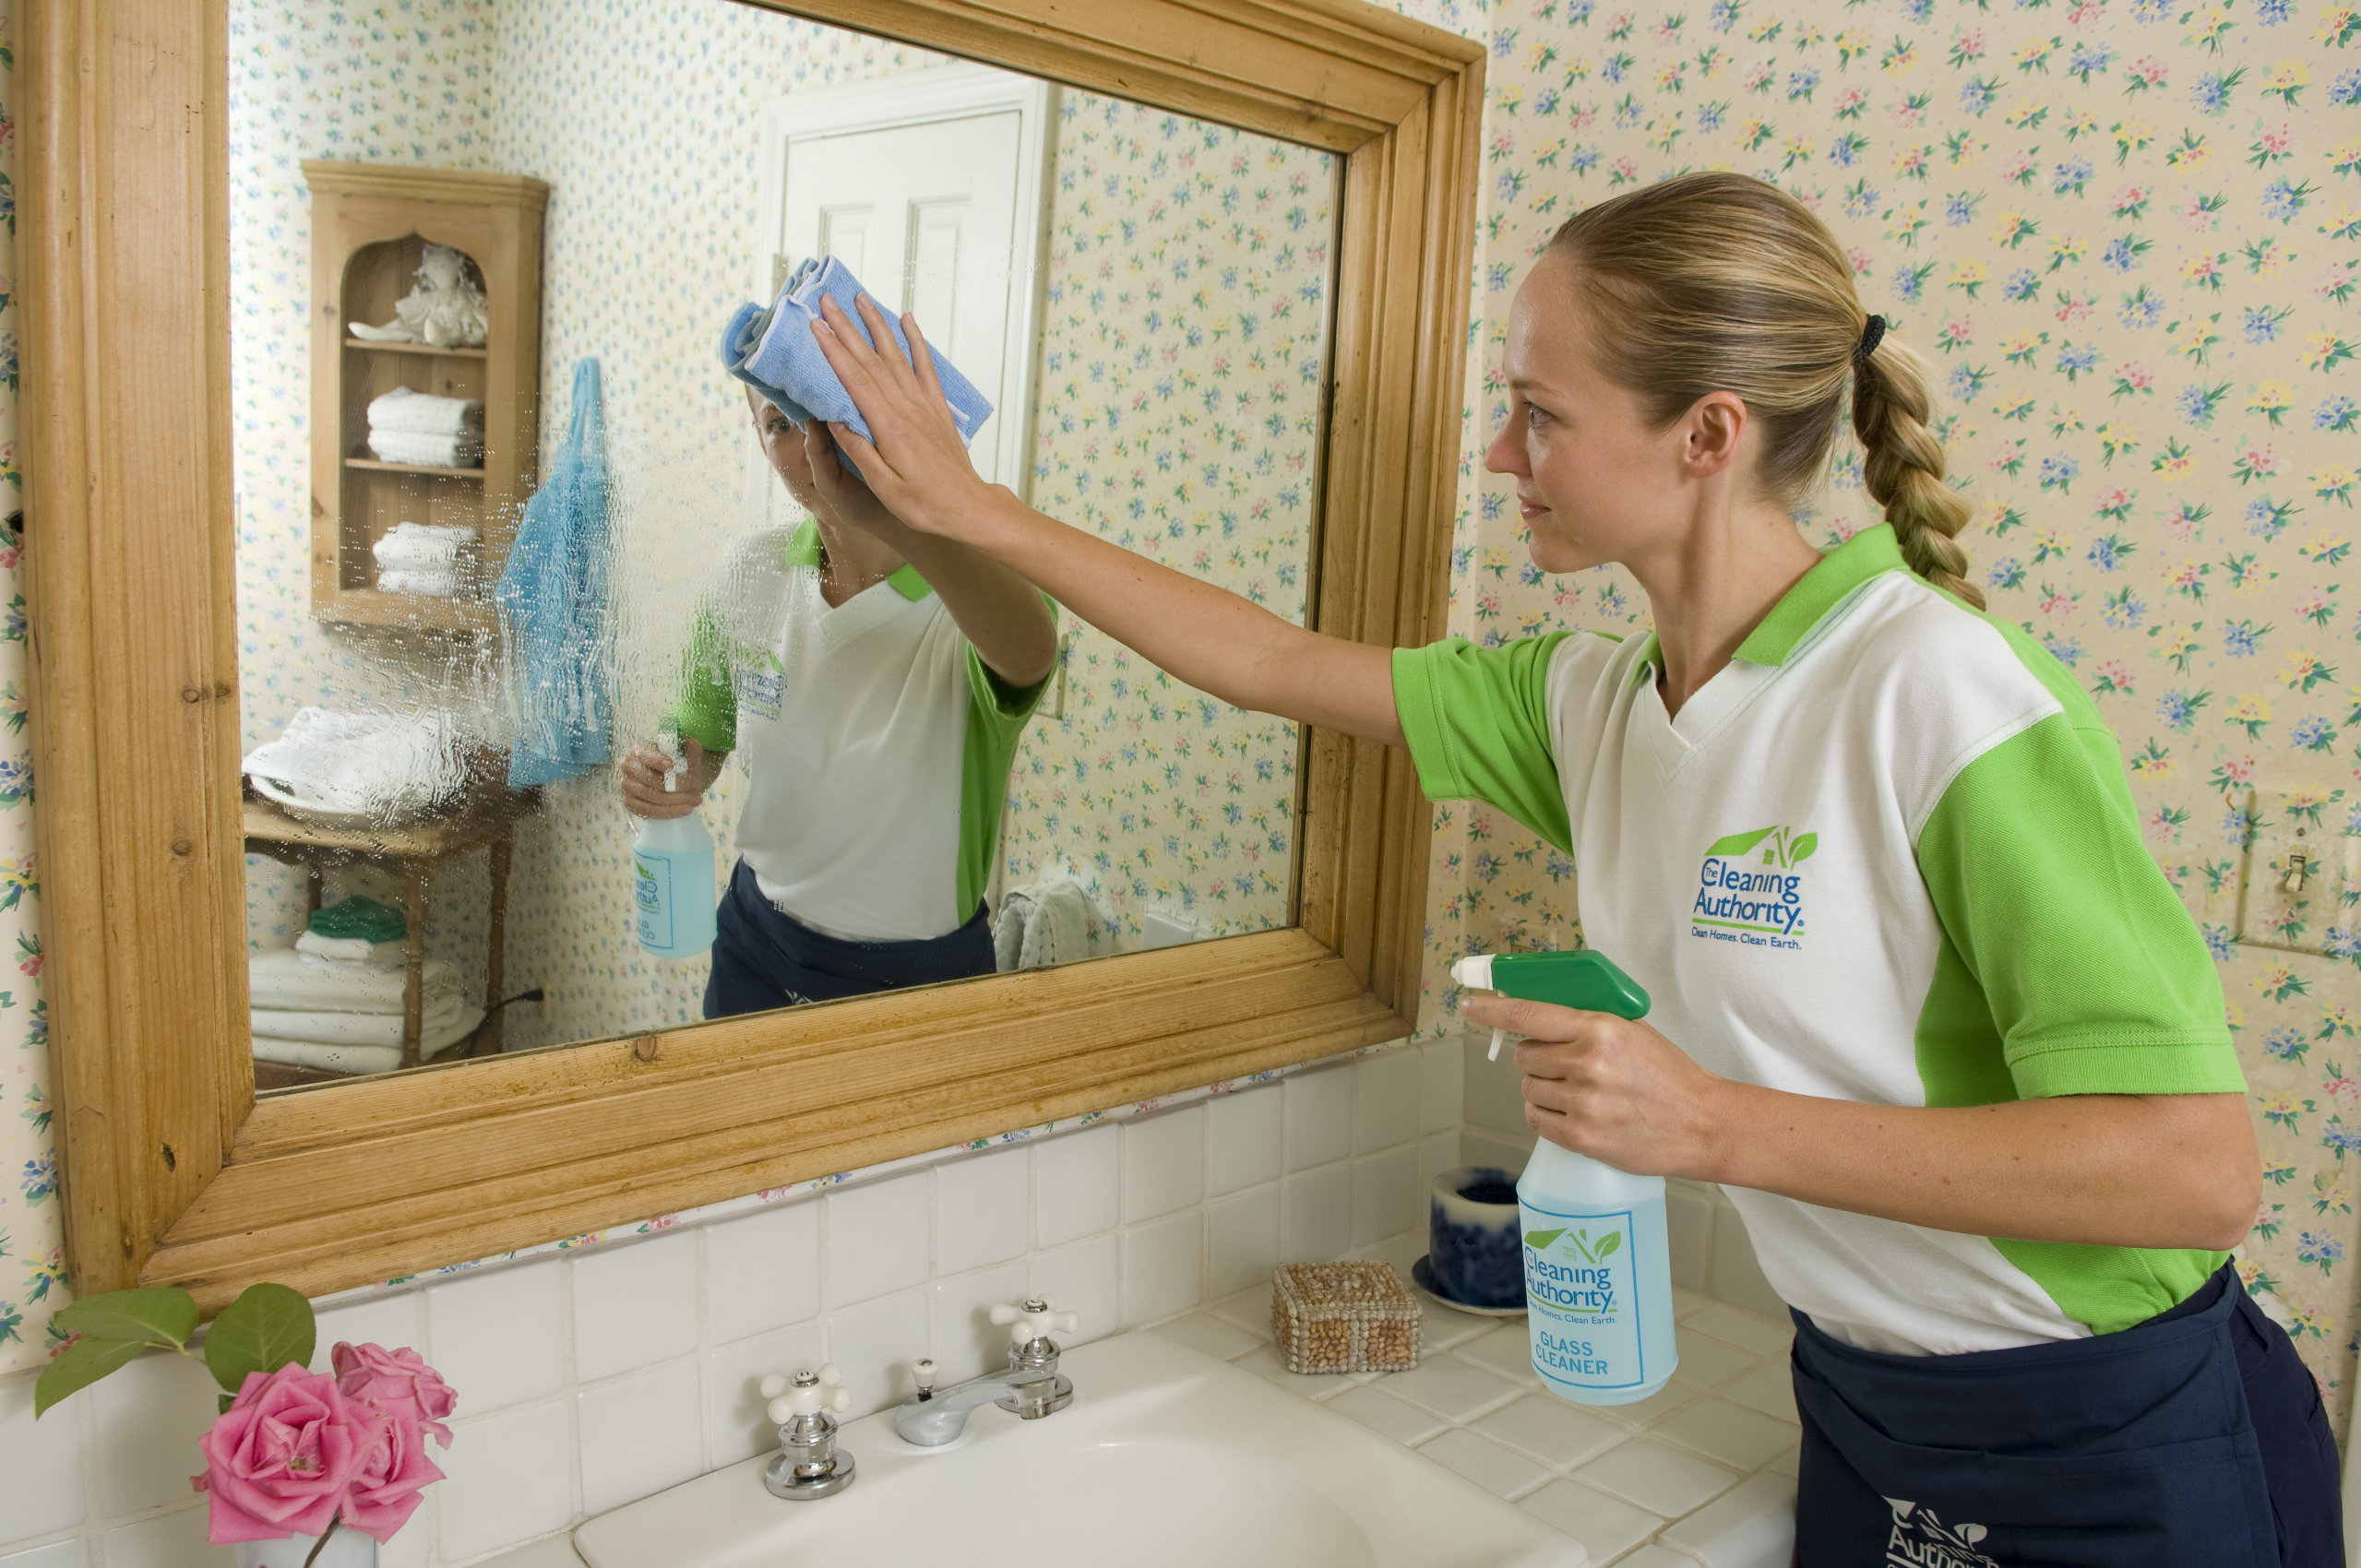 Naked maids services house cleaning for House detailing